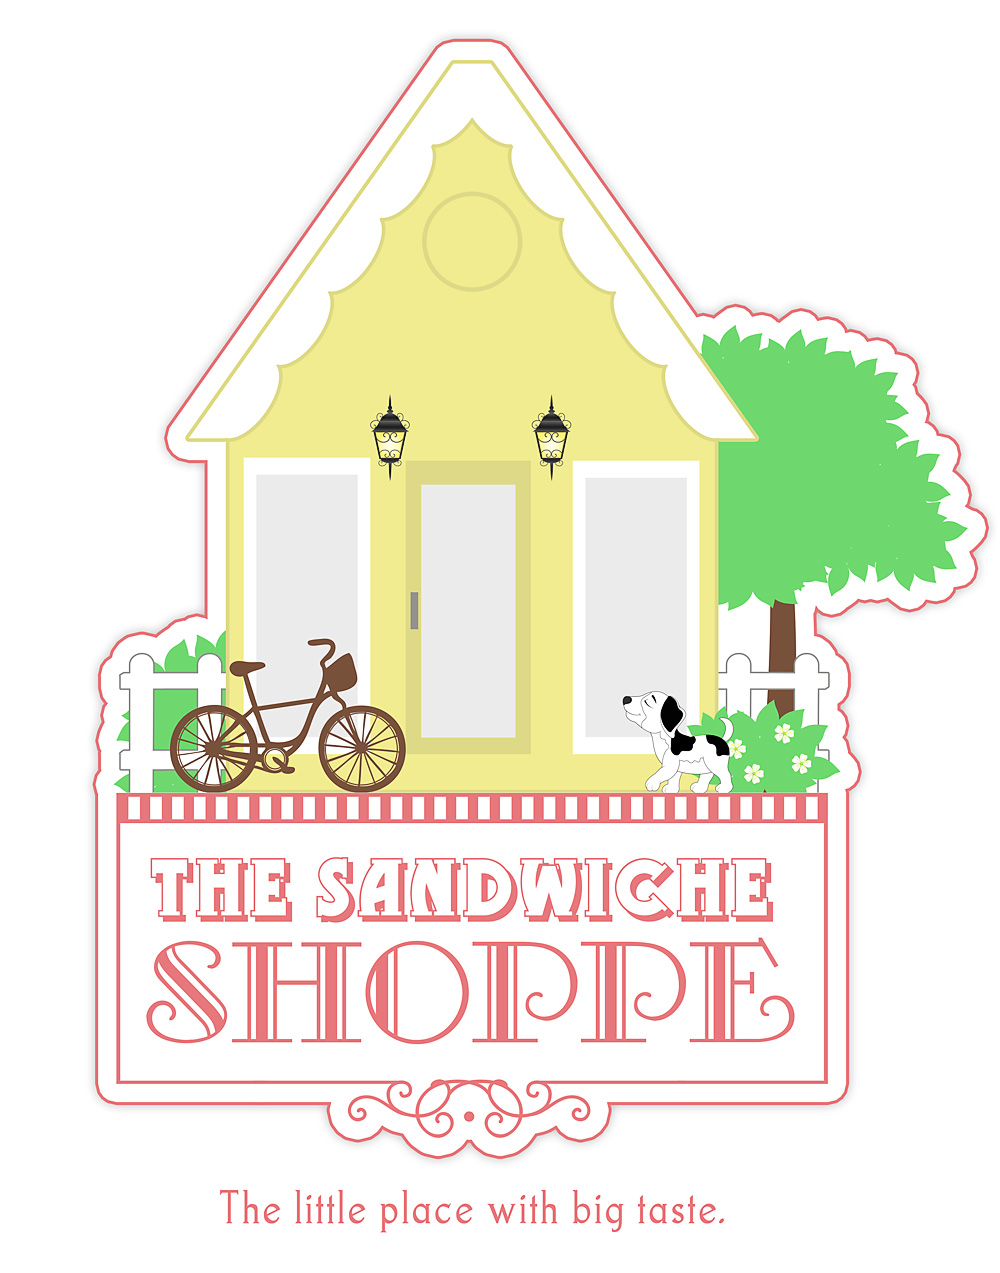 sandwiche-shoppe-2-web.jpg